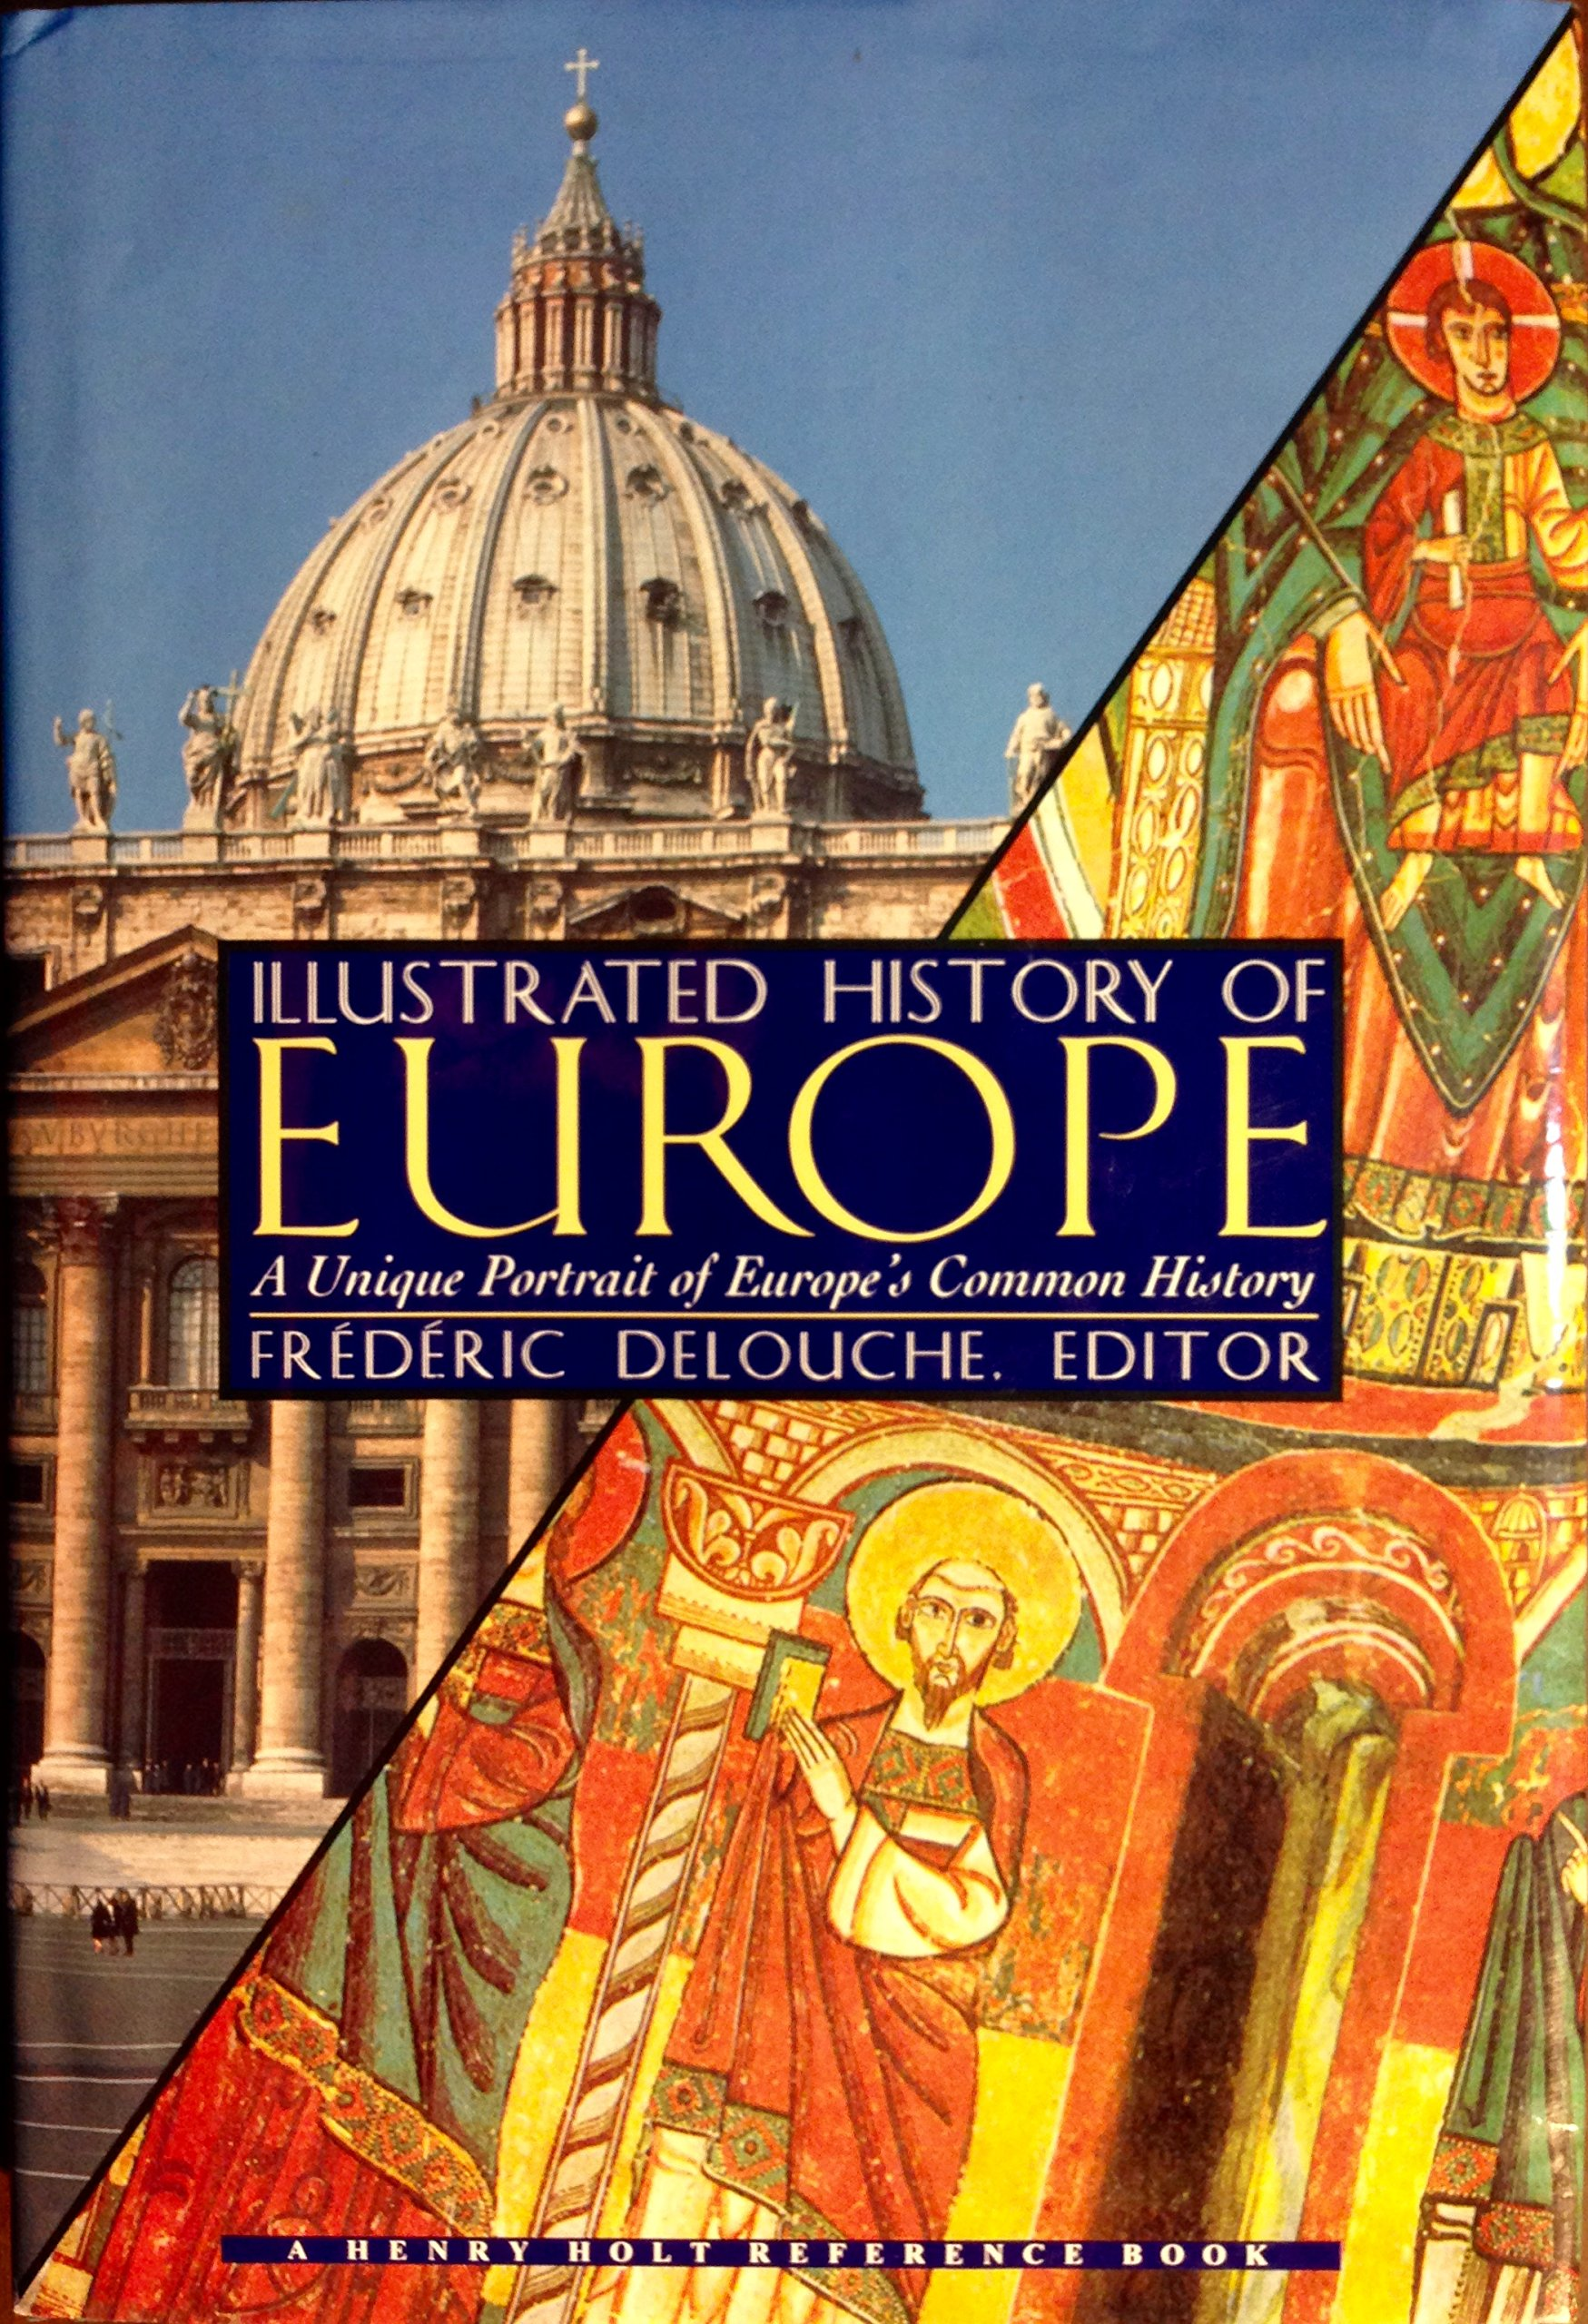 The Illustrated History Of Europe: A Unique Portrait Of Europe'smon  History (henry Holt Reference Book): Frederic Delouche: 9780805027075:  Amazon: